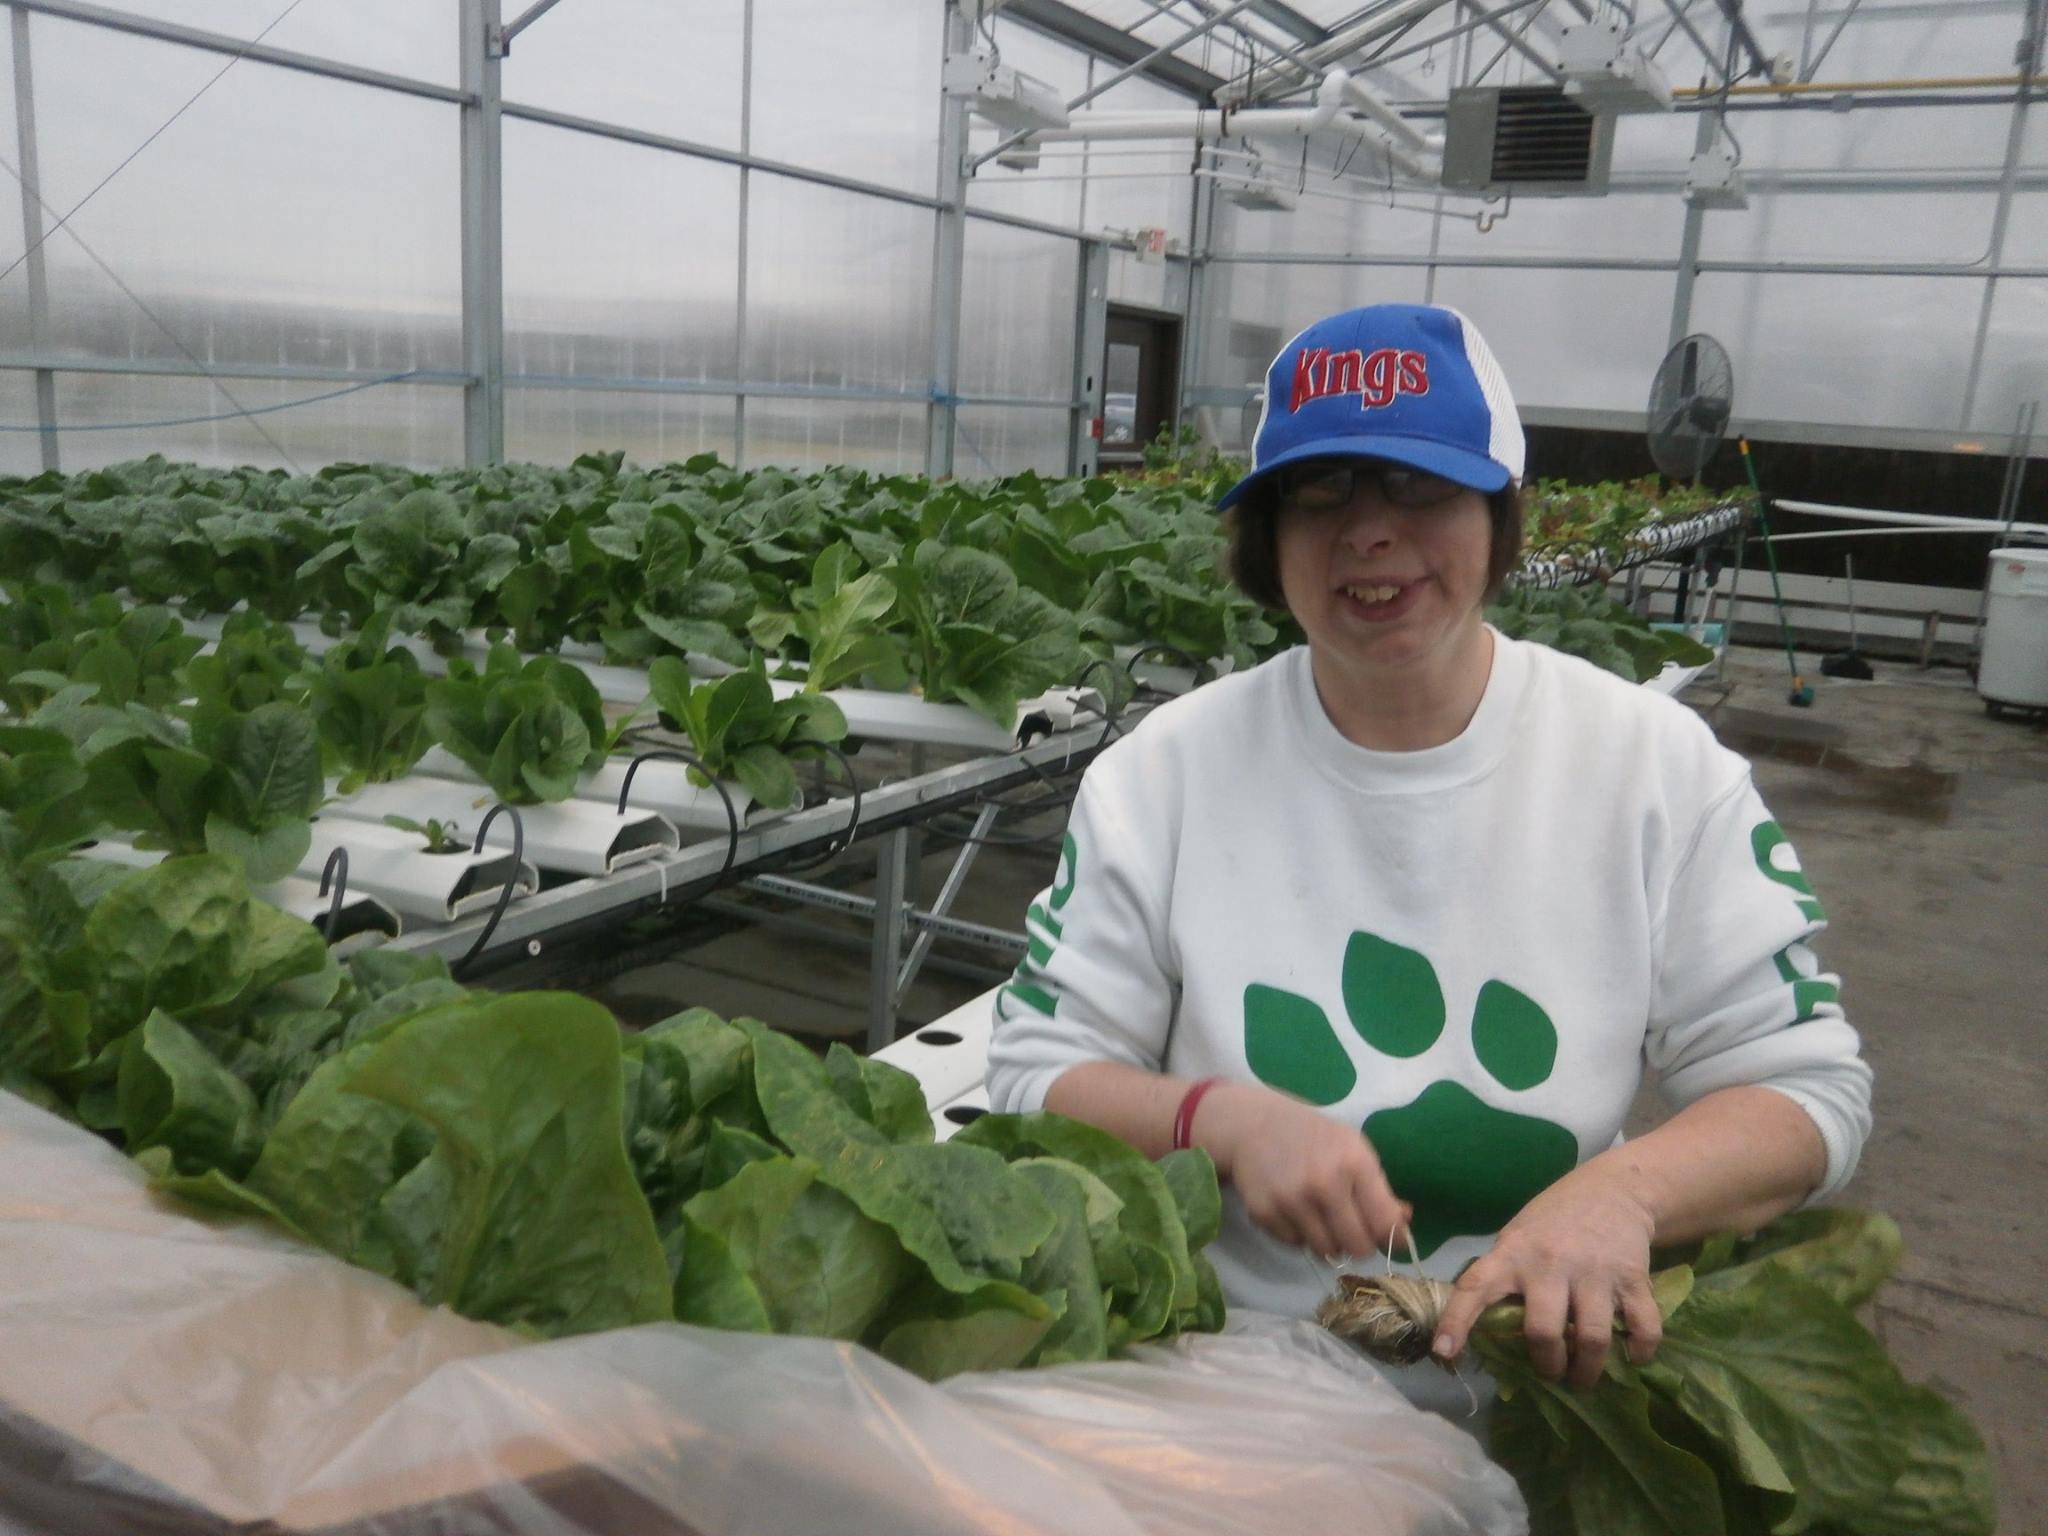 TAC Industries - Hydroponic Greenhouses Grow Voc Rehab Opportunities | Integrity Wealth Partners